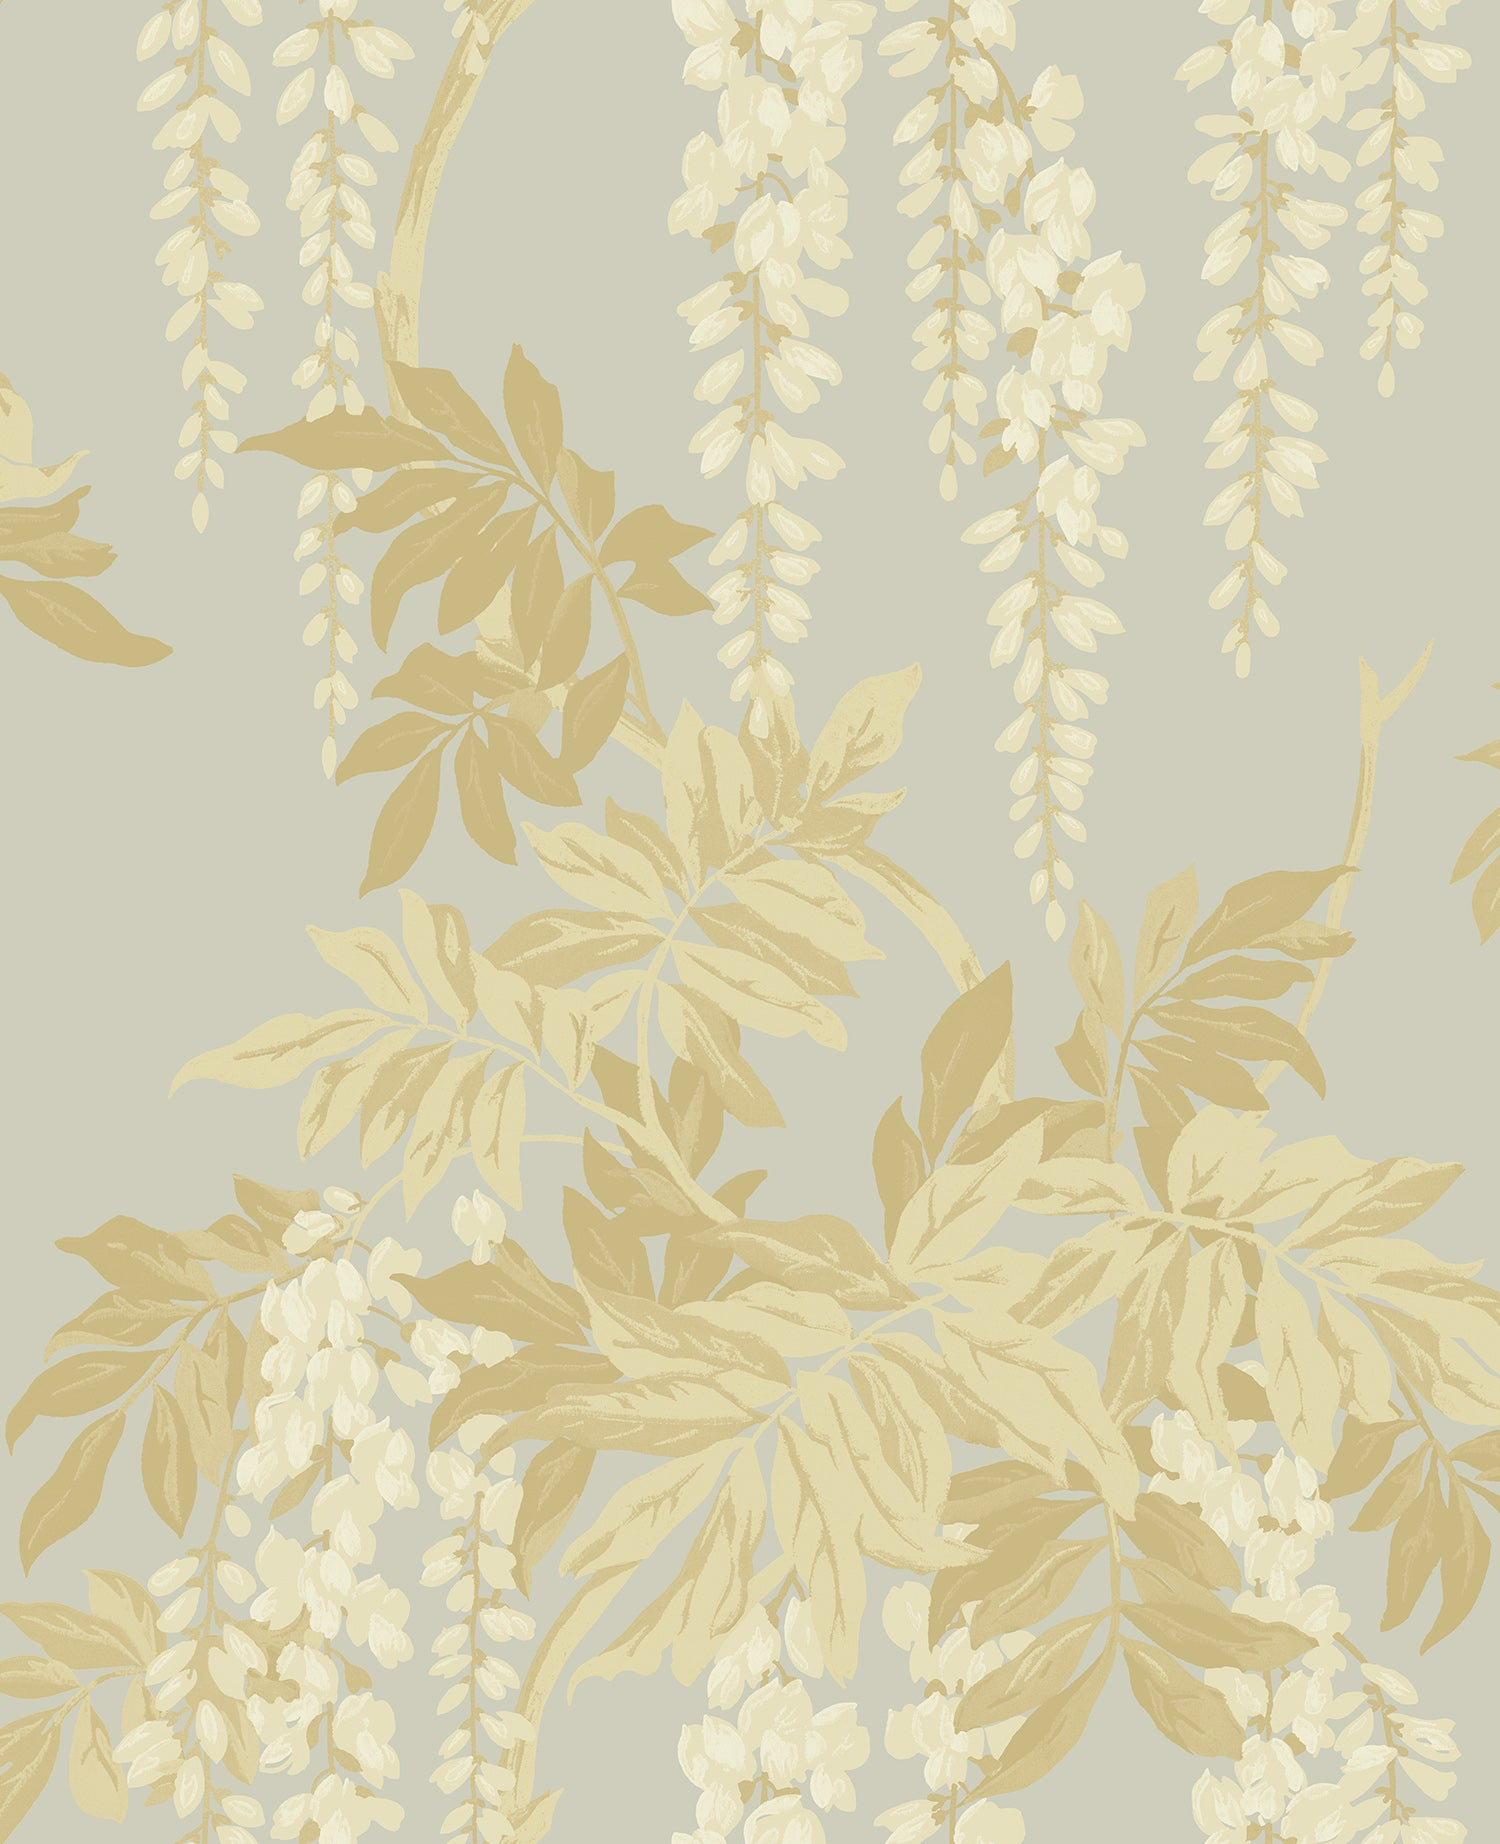 Wisteria Wallpaper in Cream, Taupe, and Bronze from the Watercolor ...